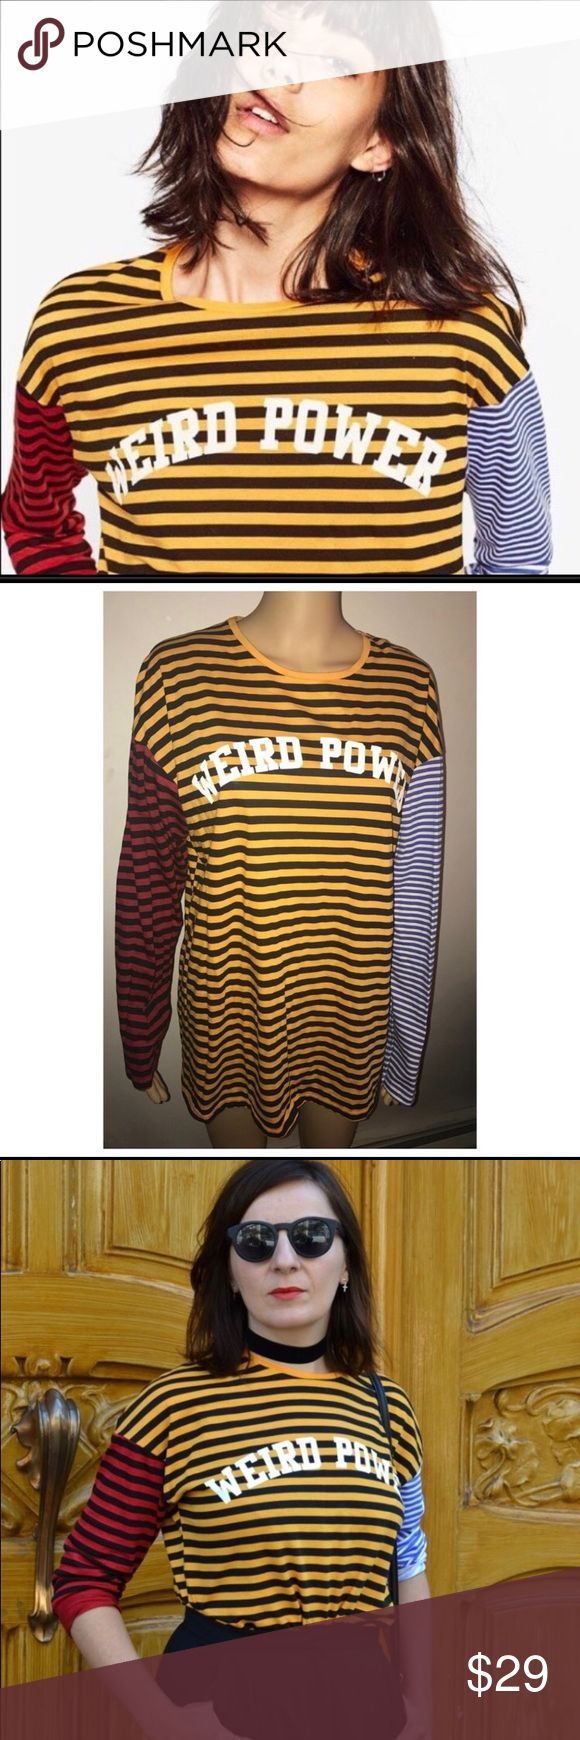 """NWT Zara """"Weird Power"""" Statement Shirt Brand new with tags super dope Zara Statement shirt. Long sleeve tee that says """"Weird Power"""" on the front. Striped all over and is super trendy and cute! Size large and would definitely work as a unisex shirt. Pair with jeans, a cute skirt, shorts or even a bikini bottom! Lol Like Manish (the CEO of Poshmark) says, """"We are all a little weird,"""" so own it with this top. Bundle and save!  ❤️❤️❤️ 🙌🏾 #weirdpower (Post office prev lost it in the storm so it…"""